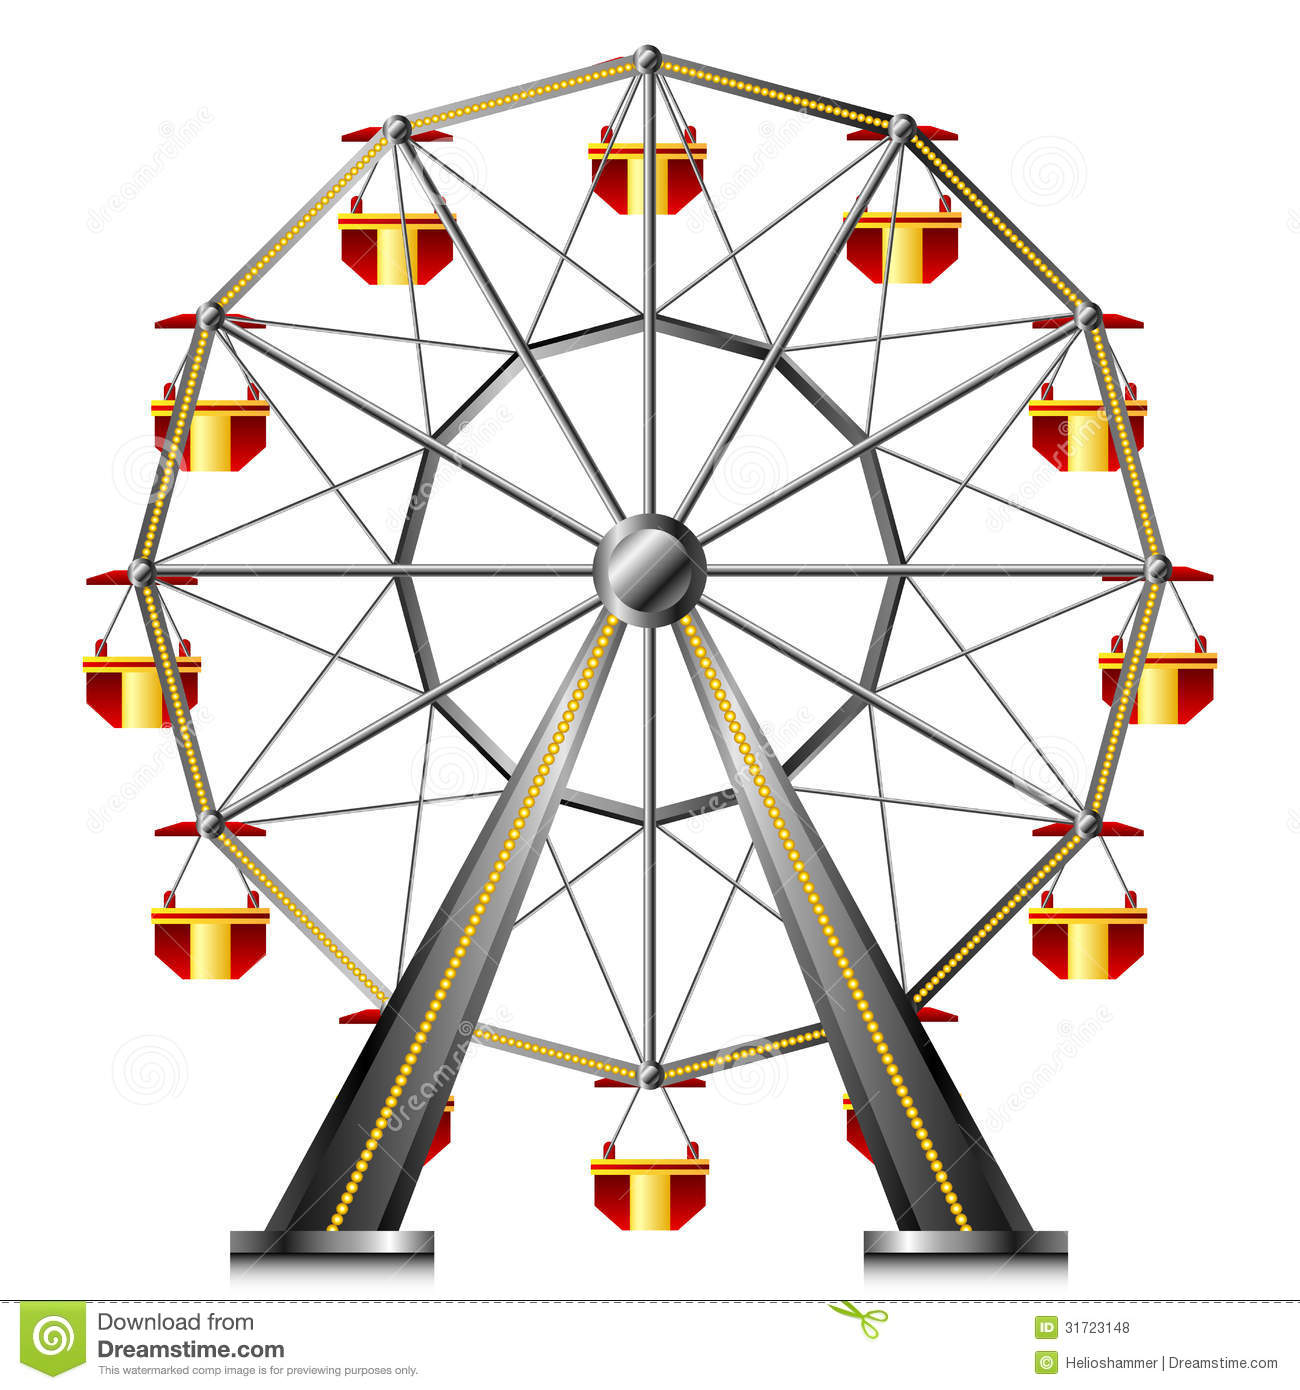 Ferris Wheel Clipart - Clipart Kid